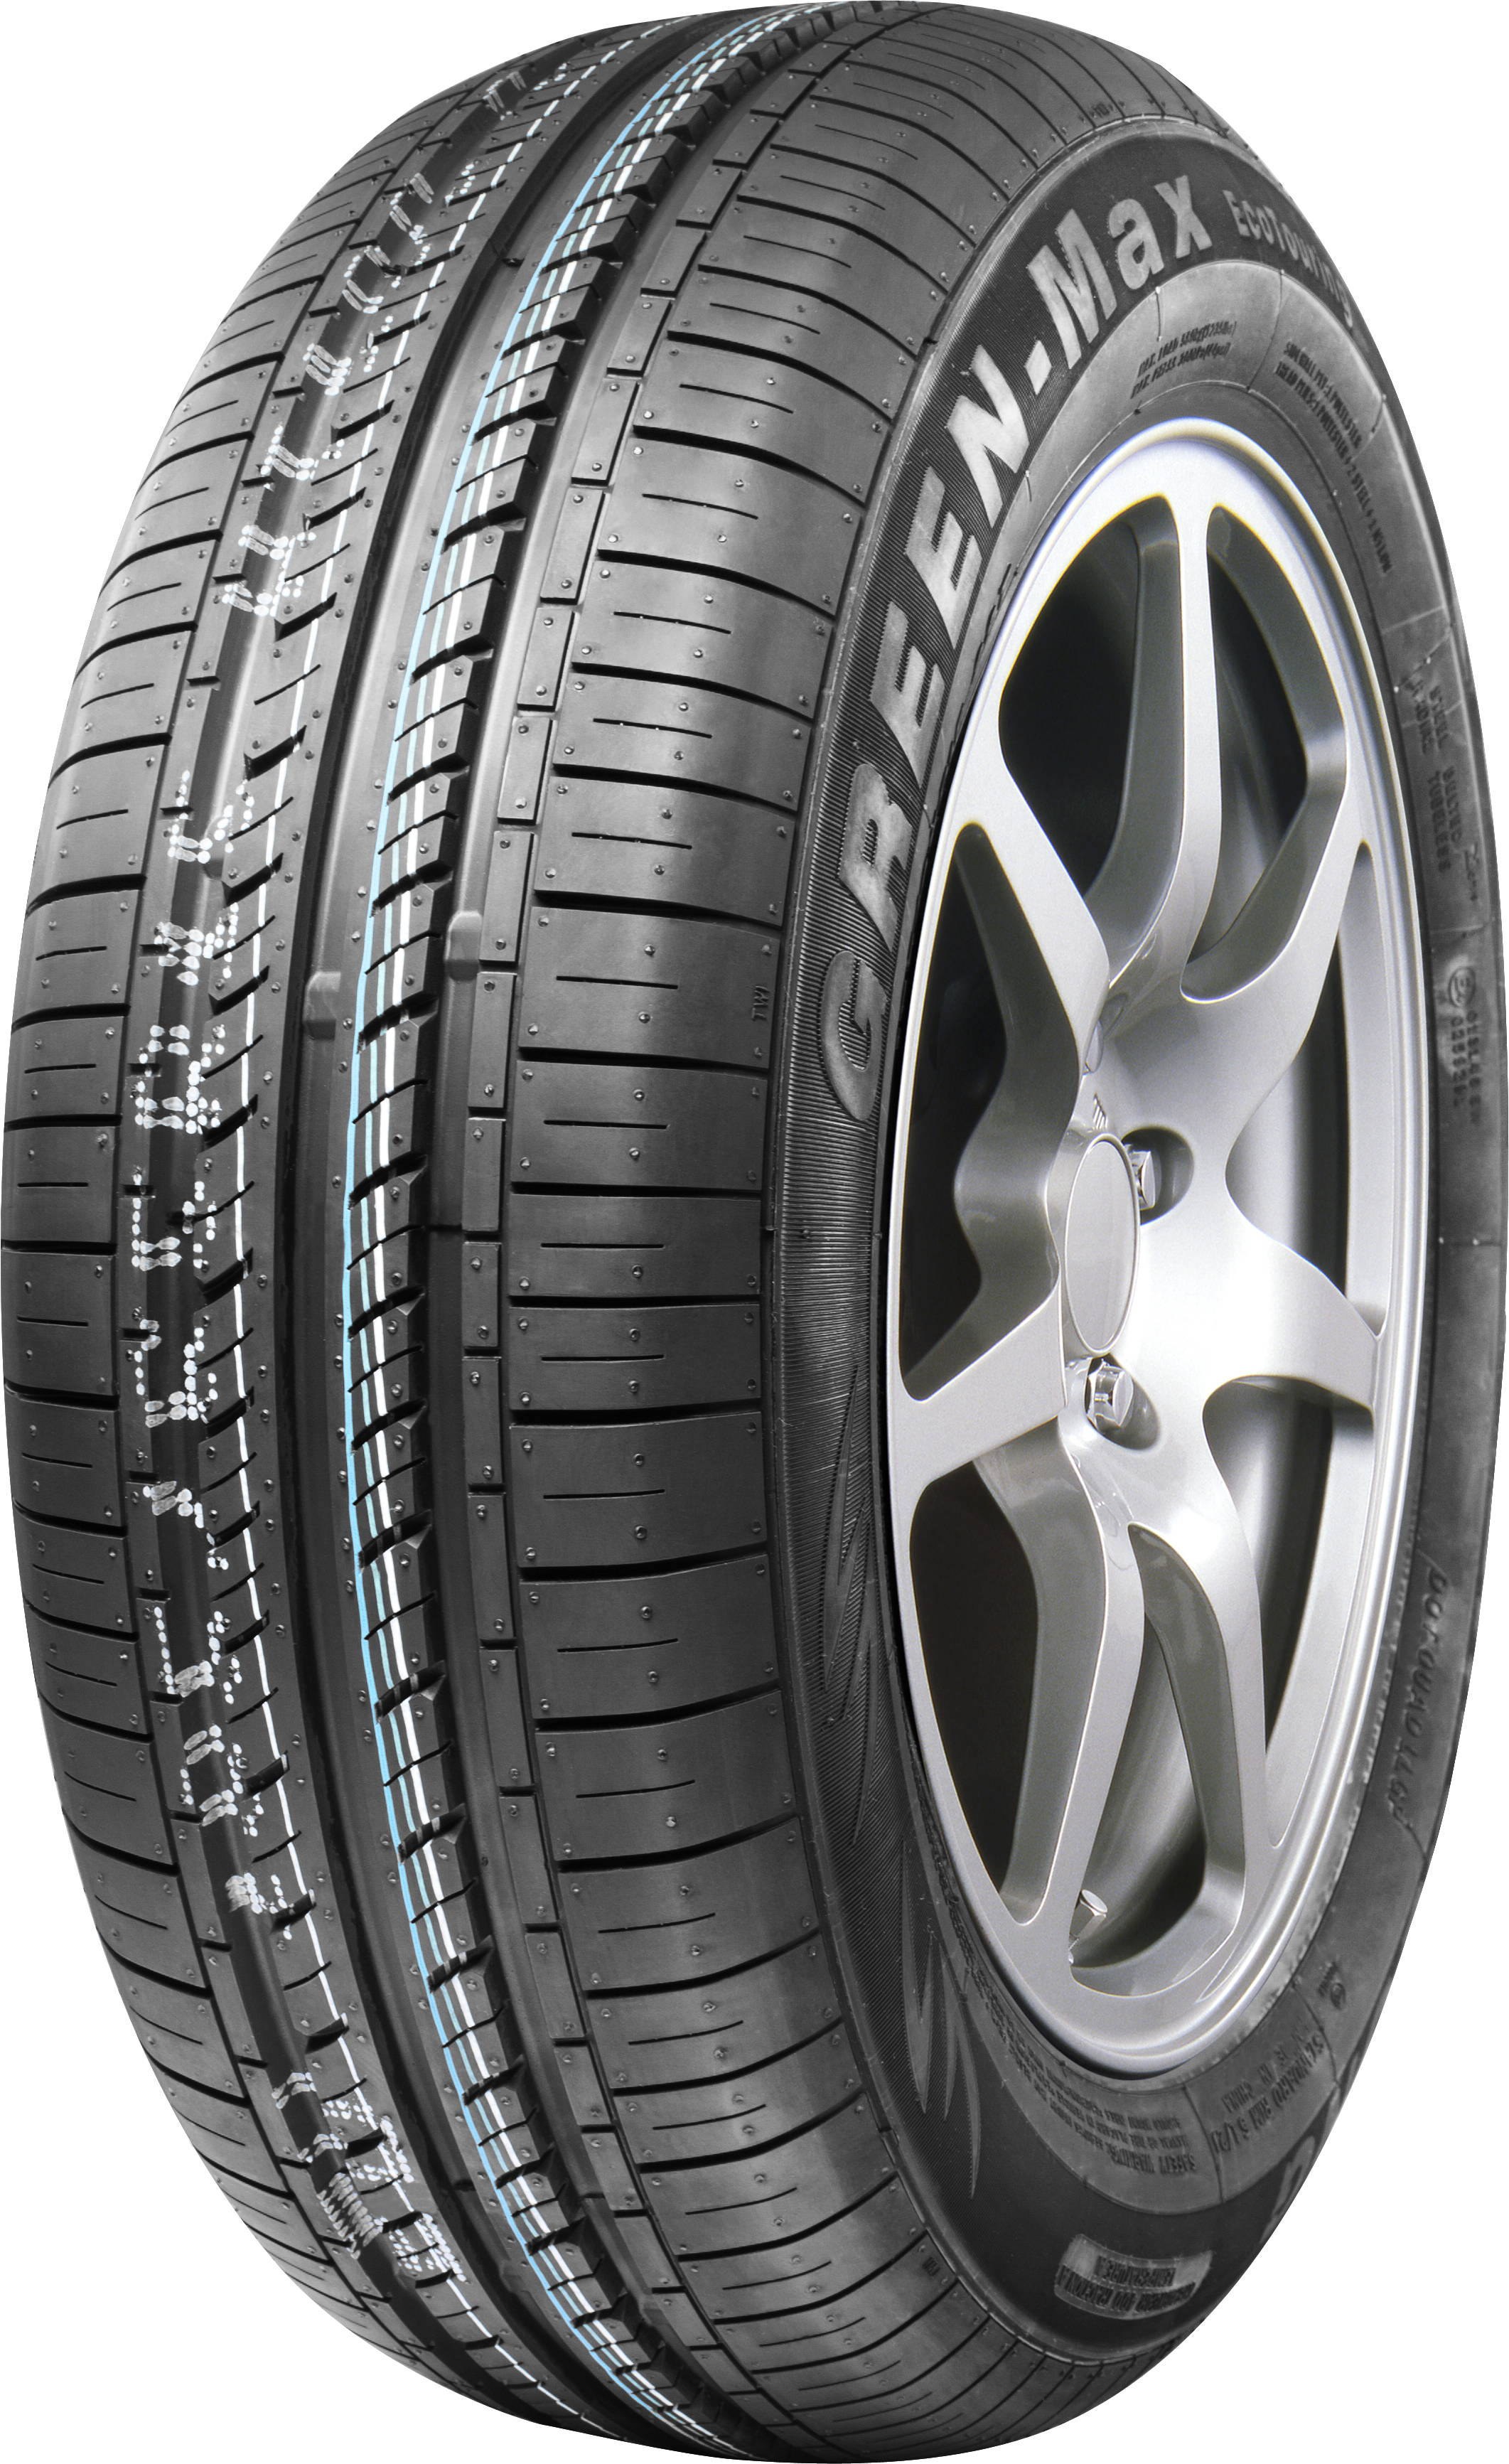 Anvelopa 195/70 R14 Green-Max Eco Touring (Linglong) photo